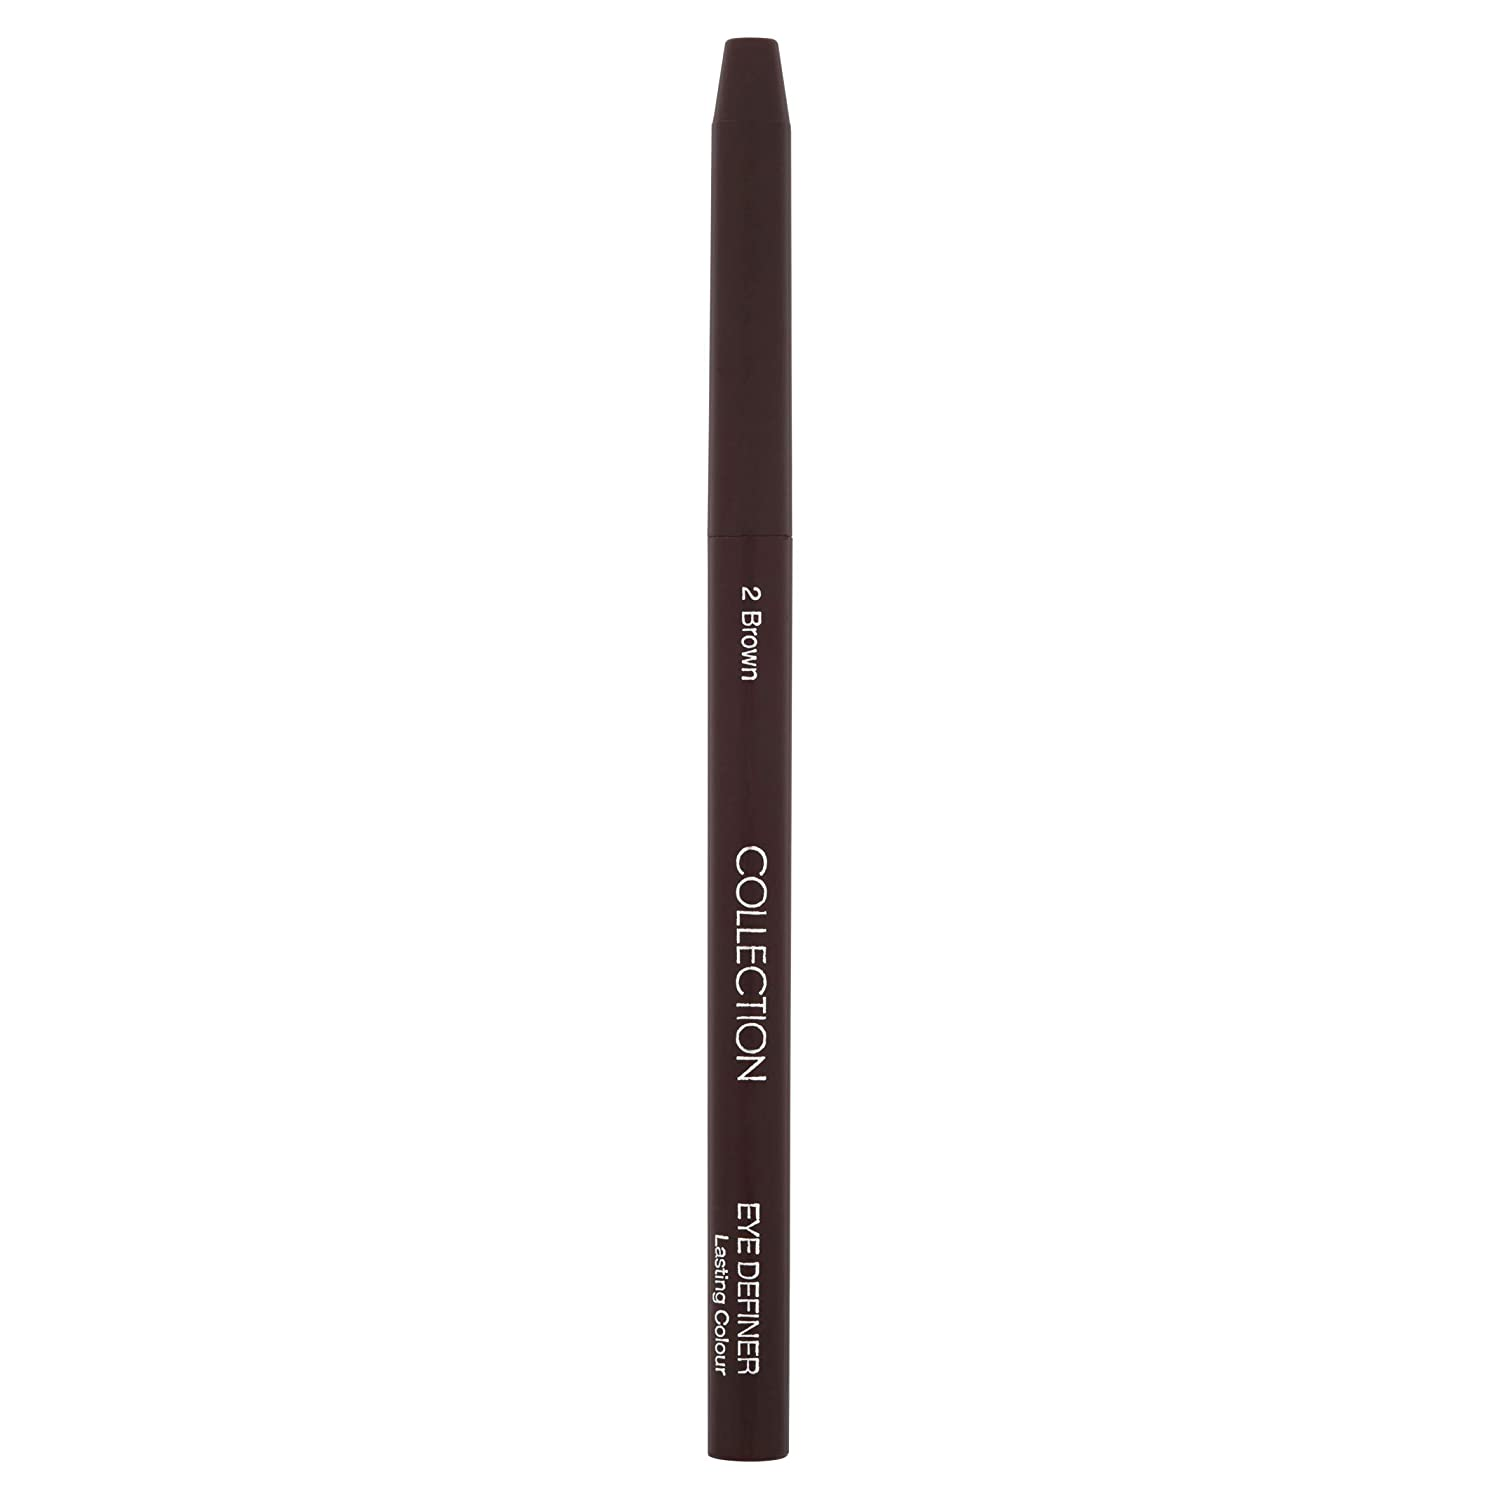 COLLECTION Eye Definer Pencil, Brown LF BEAUTY UK 508930